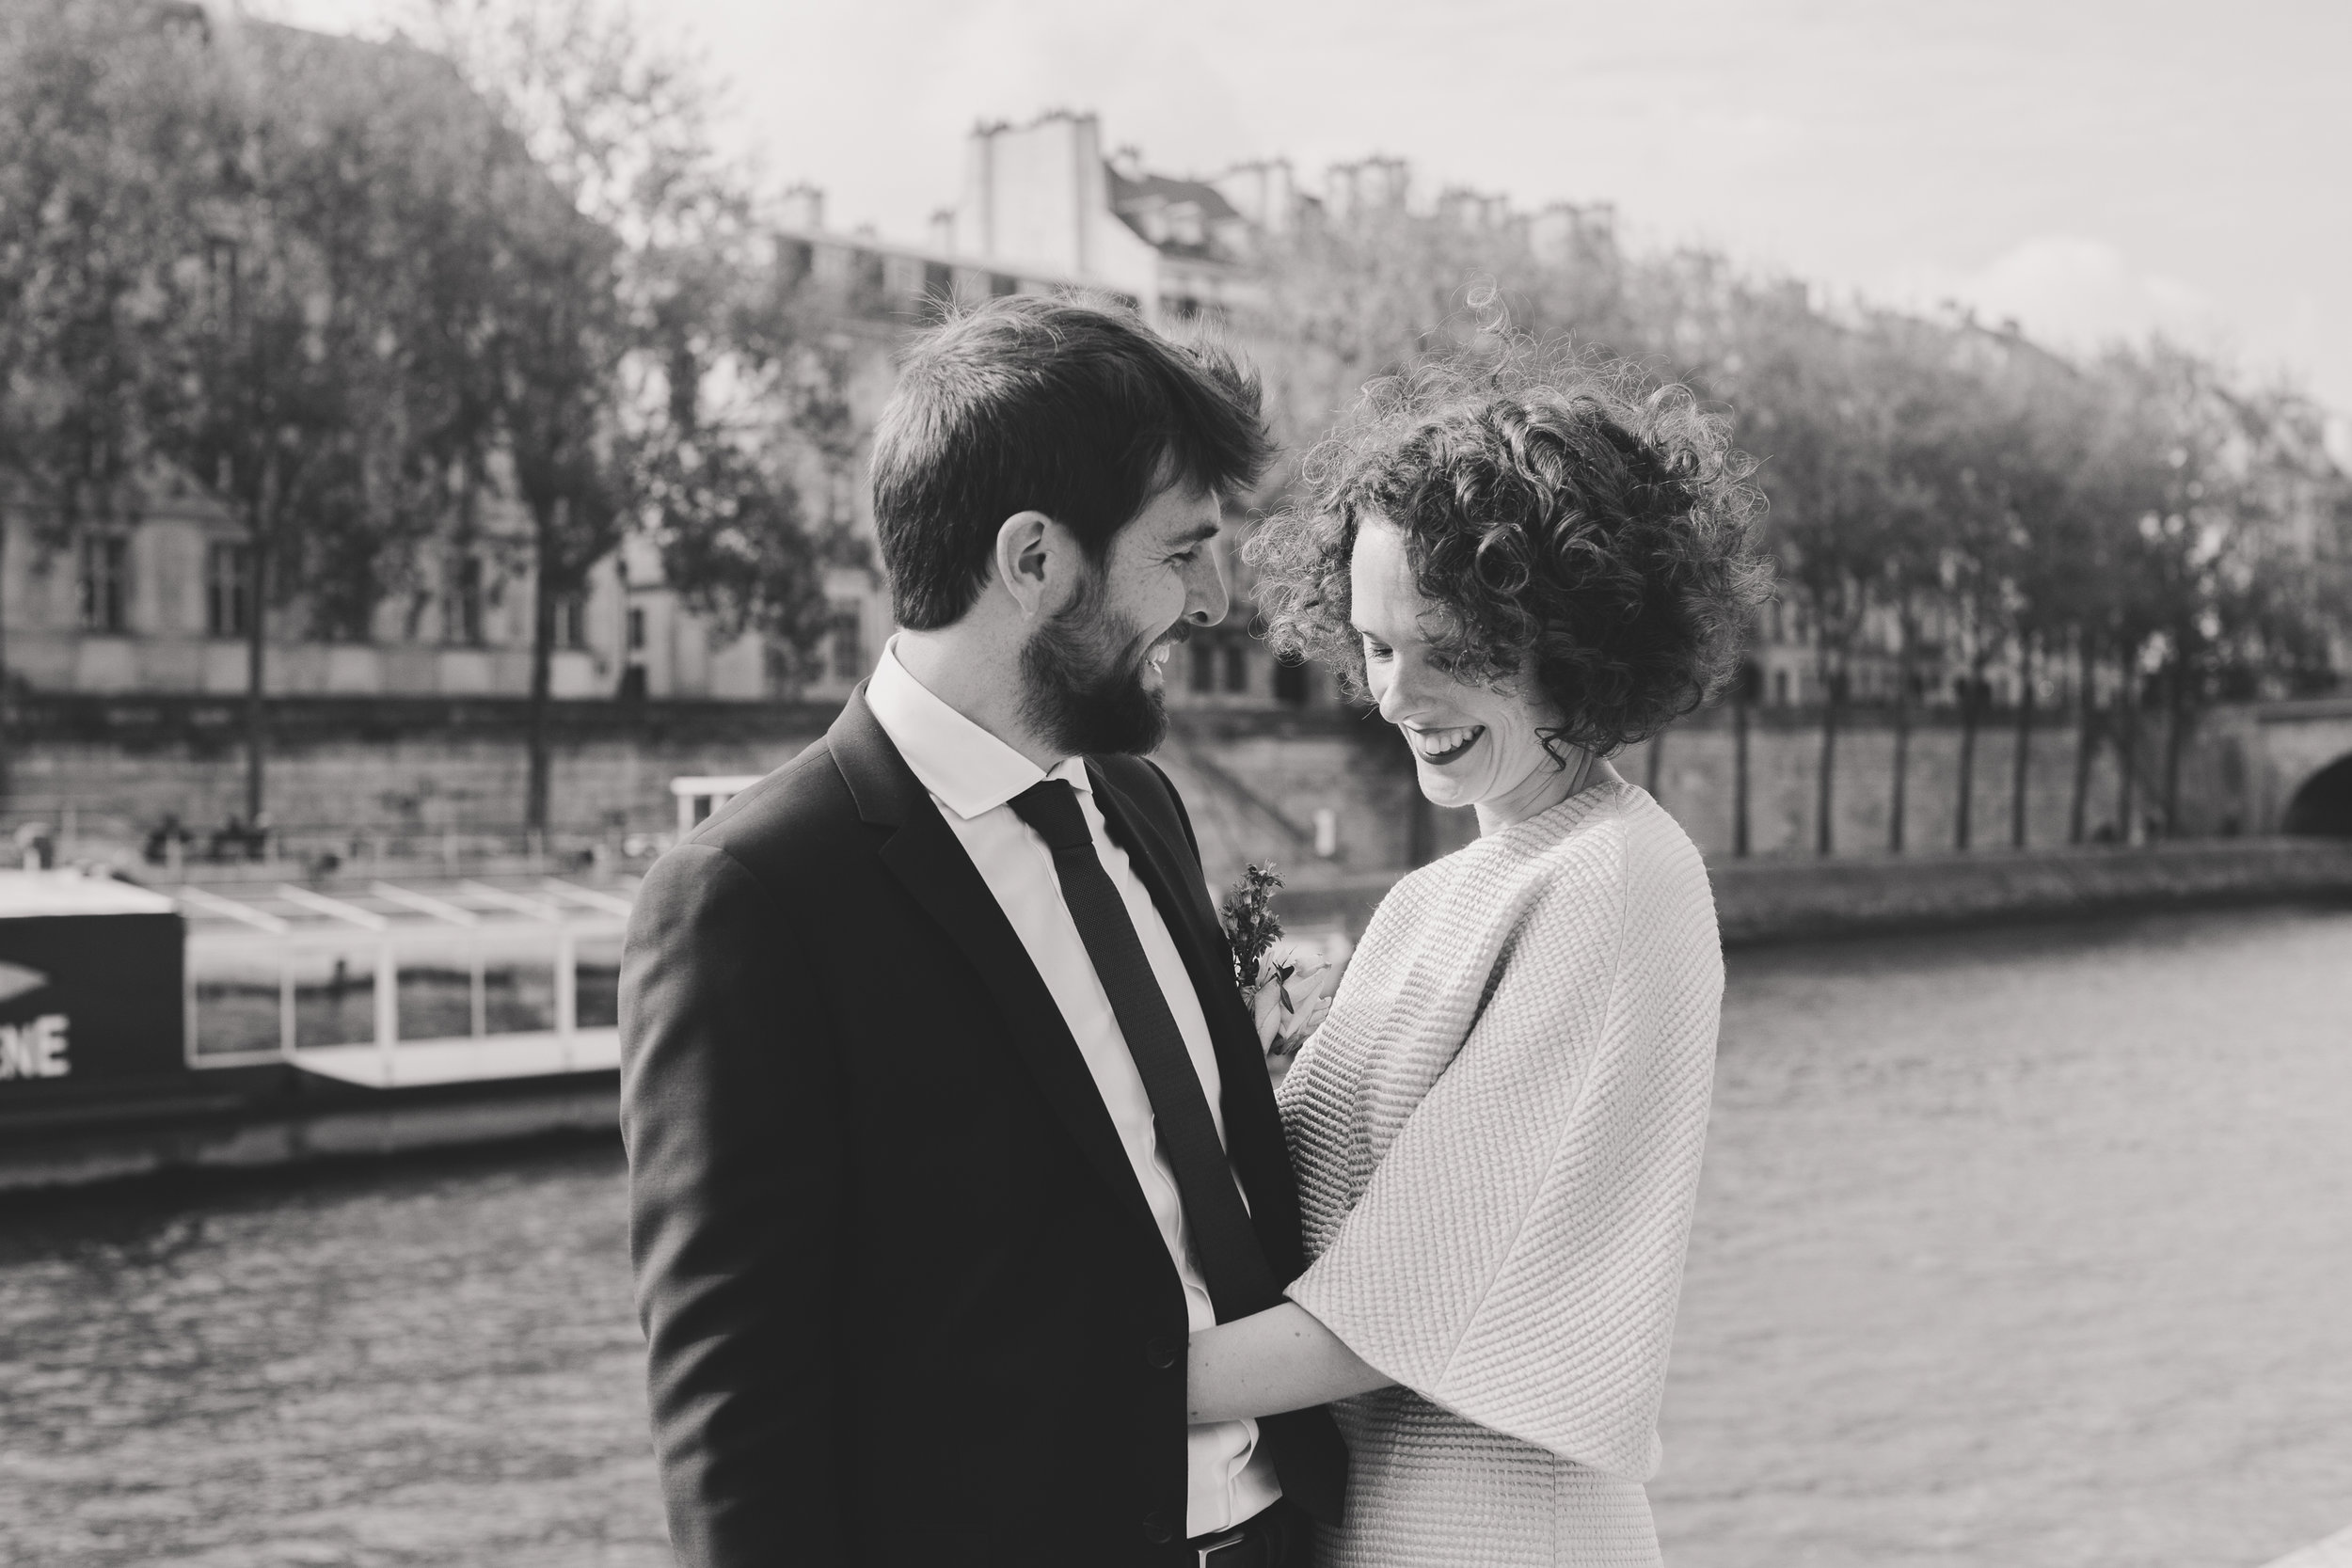 Emma&Nico_WeddingParis_by_UlaBlocksage-194.jpg